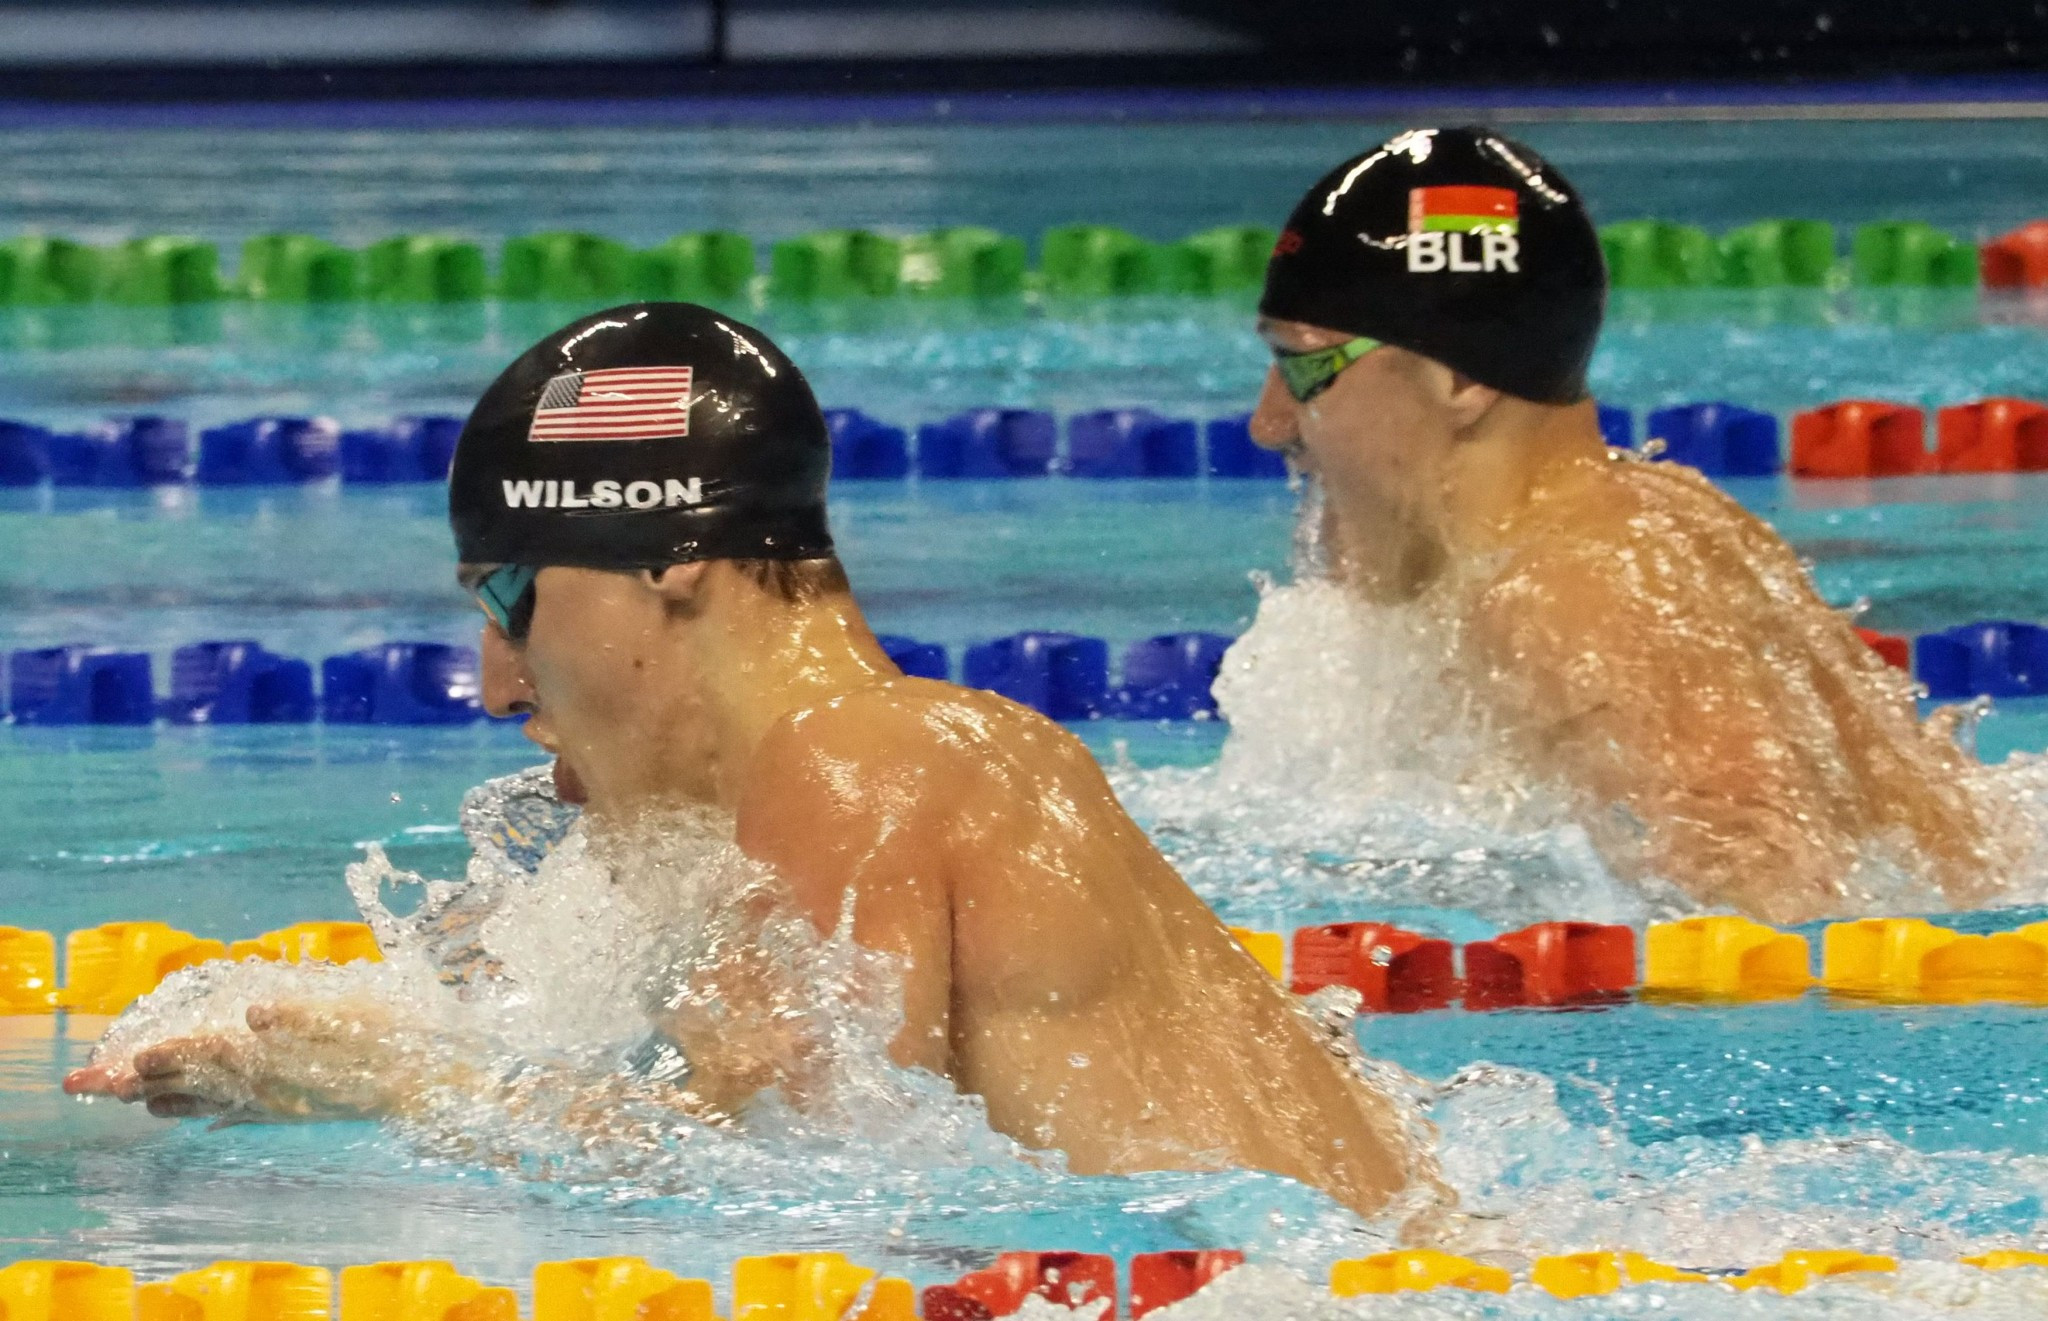 Wilson and Shymanovich share gold after sensational swimming finish